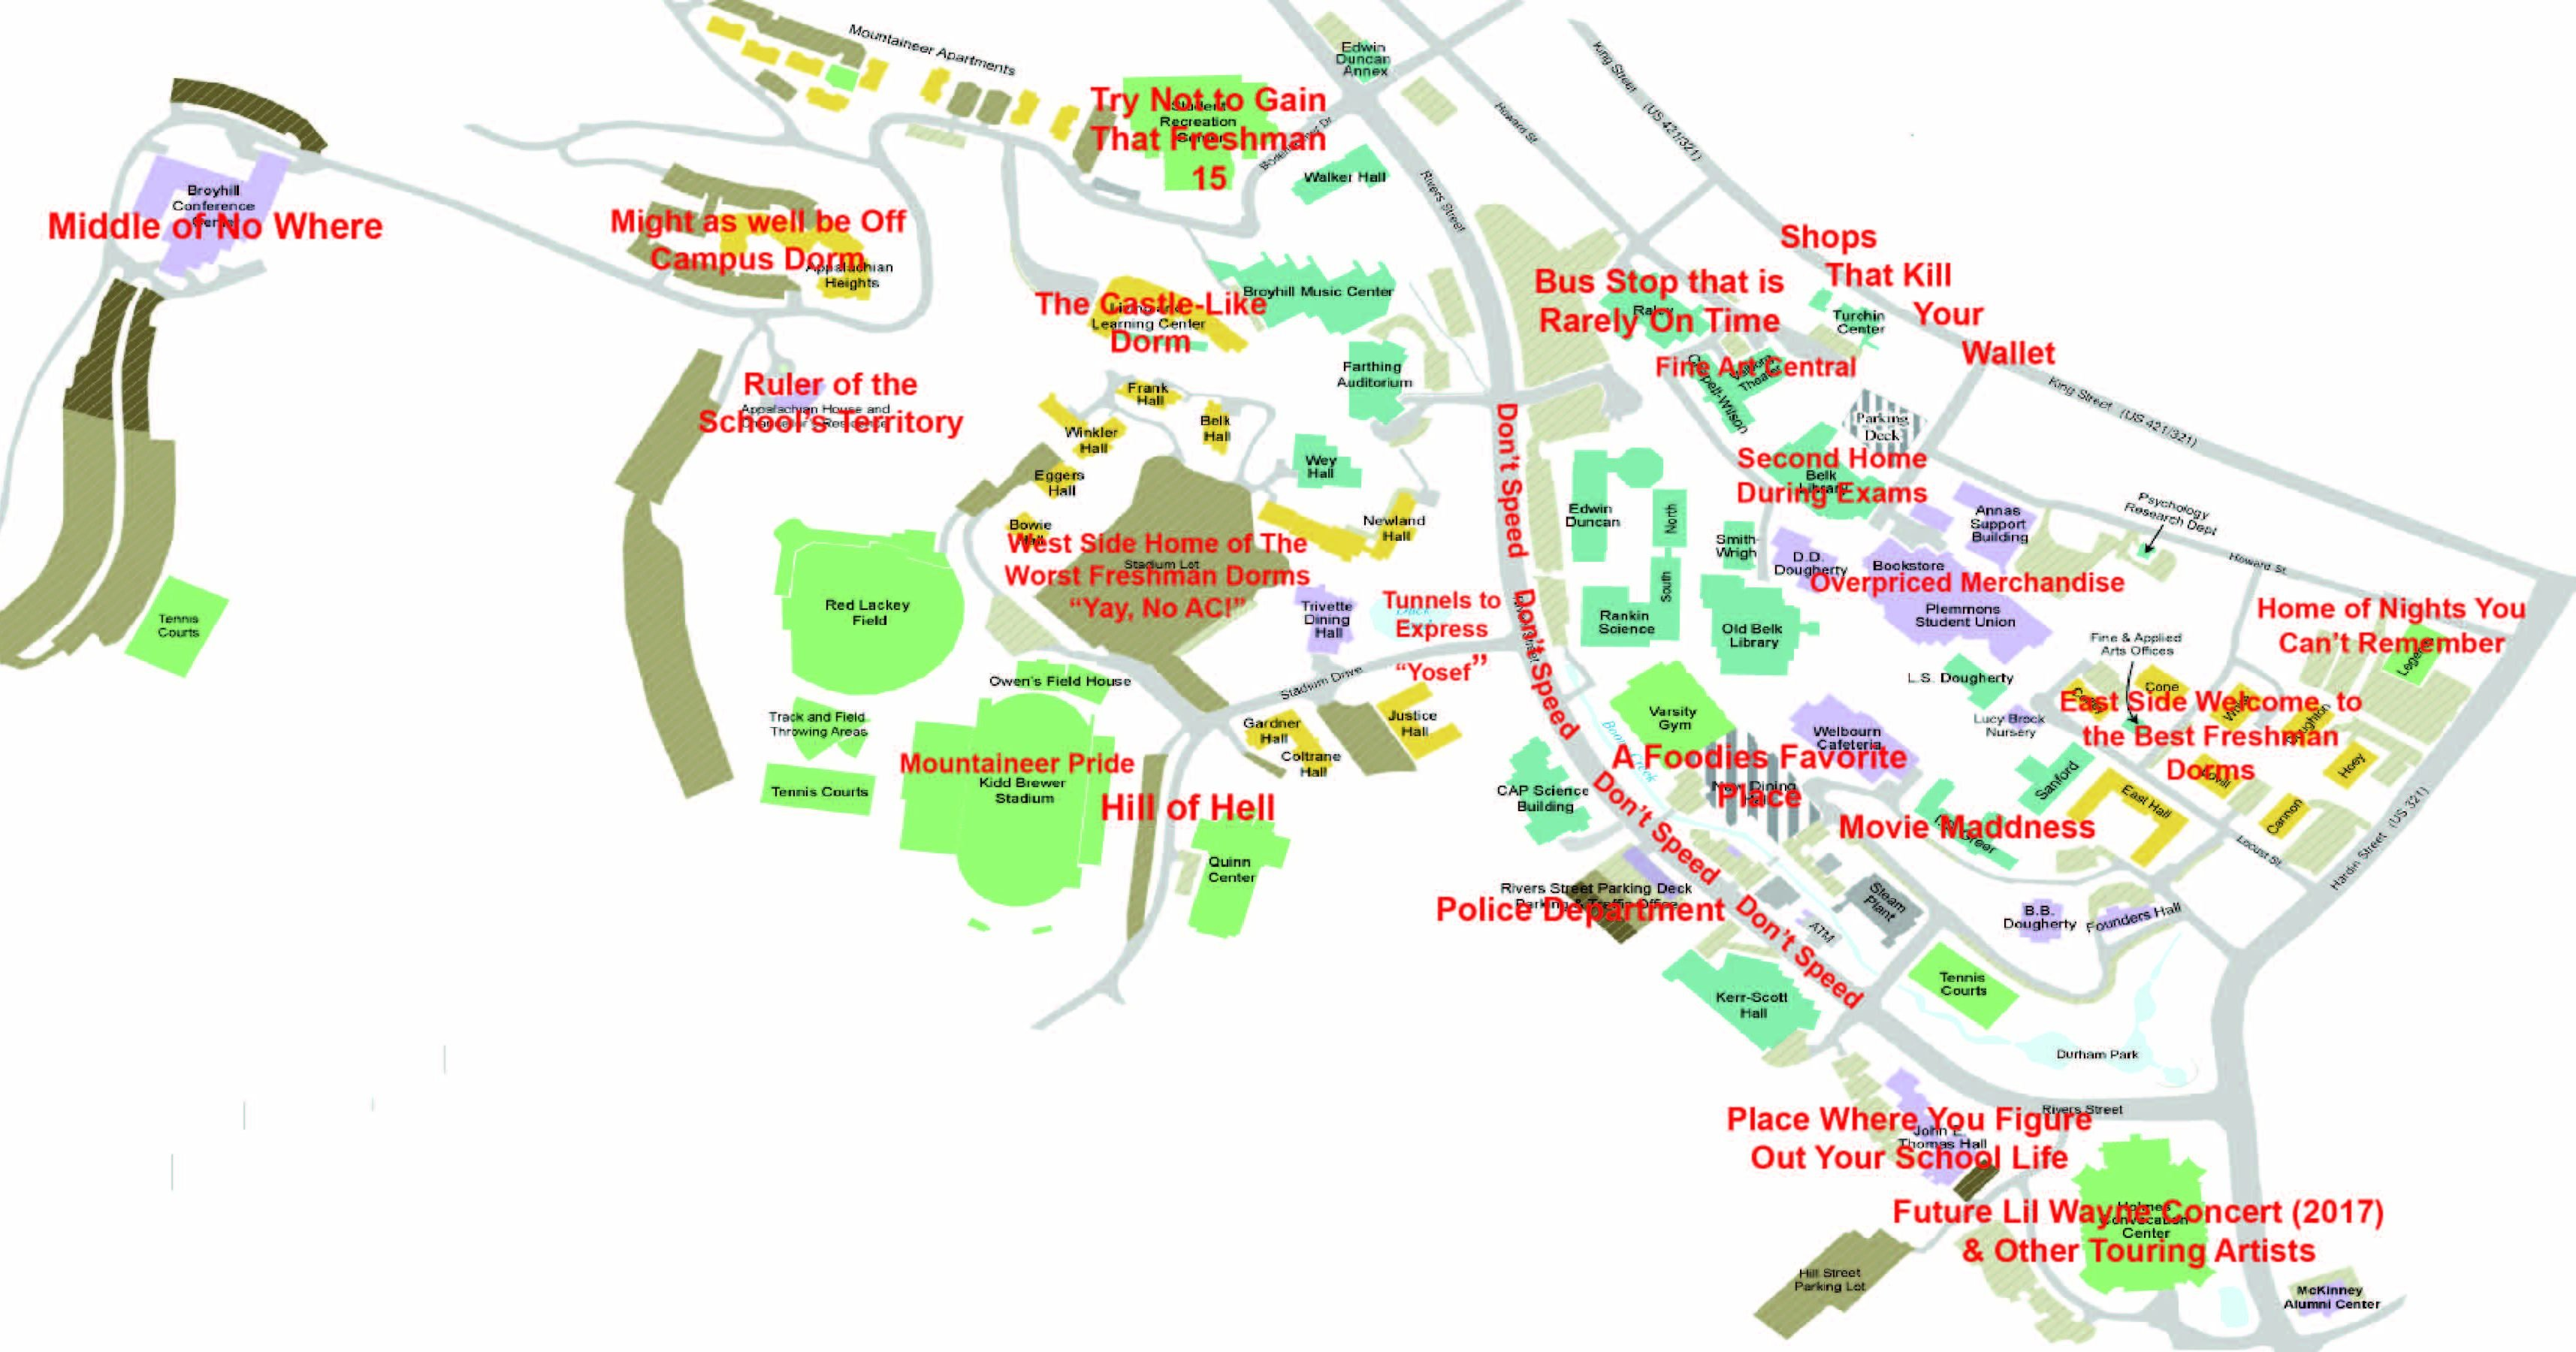 An honest map of App State because we all know Boone better ... on ohio state residence halls, app state sororities, app state cafeteria, app state bookstore, app state parking, penn state residence halls, app state student life, app state university dorms, app state wrestling camp, boise state residence halls, app state library, app state greek life, penn state pollock halls, app state football facilities, illinois state residence halls, nc state residence halls, app state human resources, app state history, app state dining, app state dorm room,